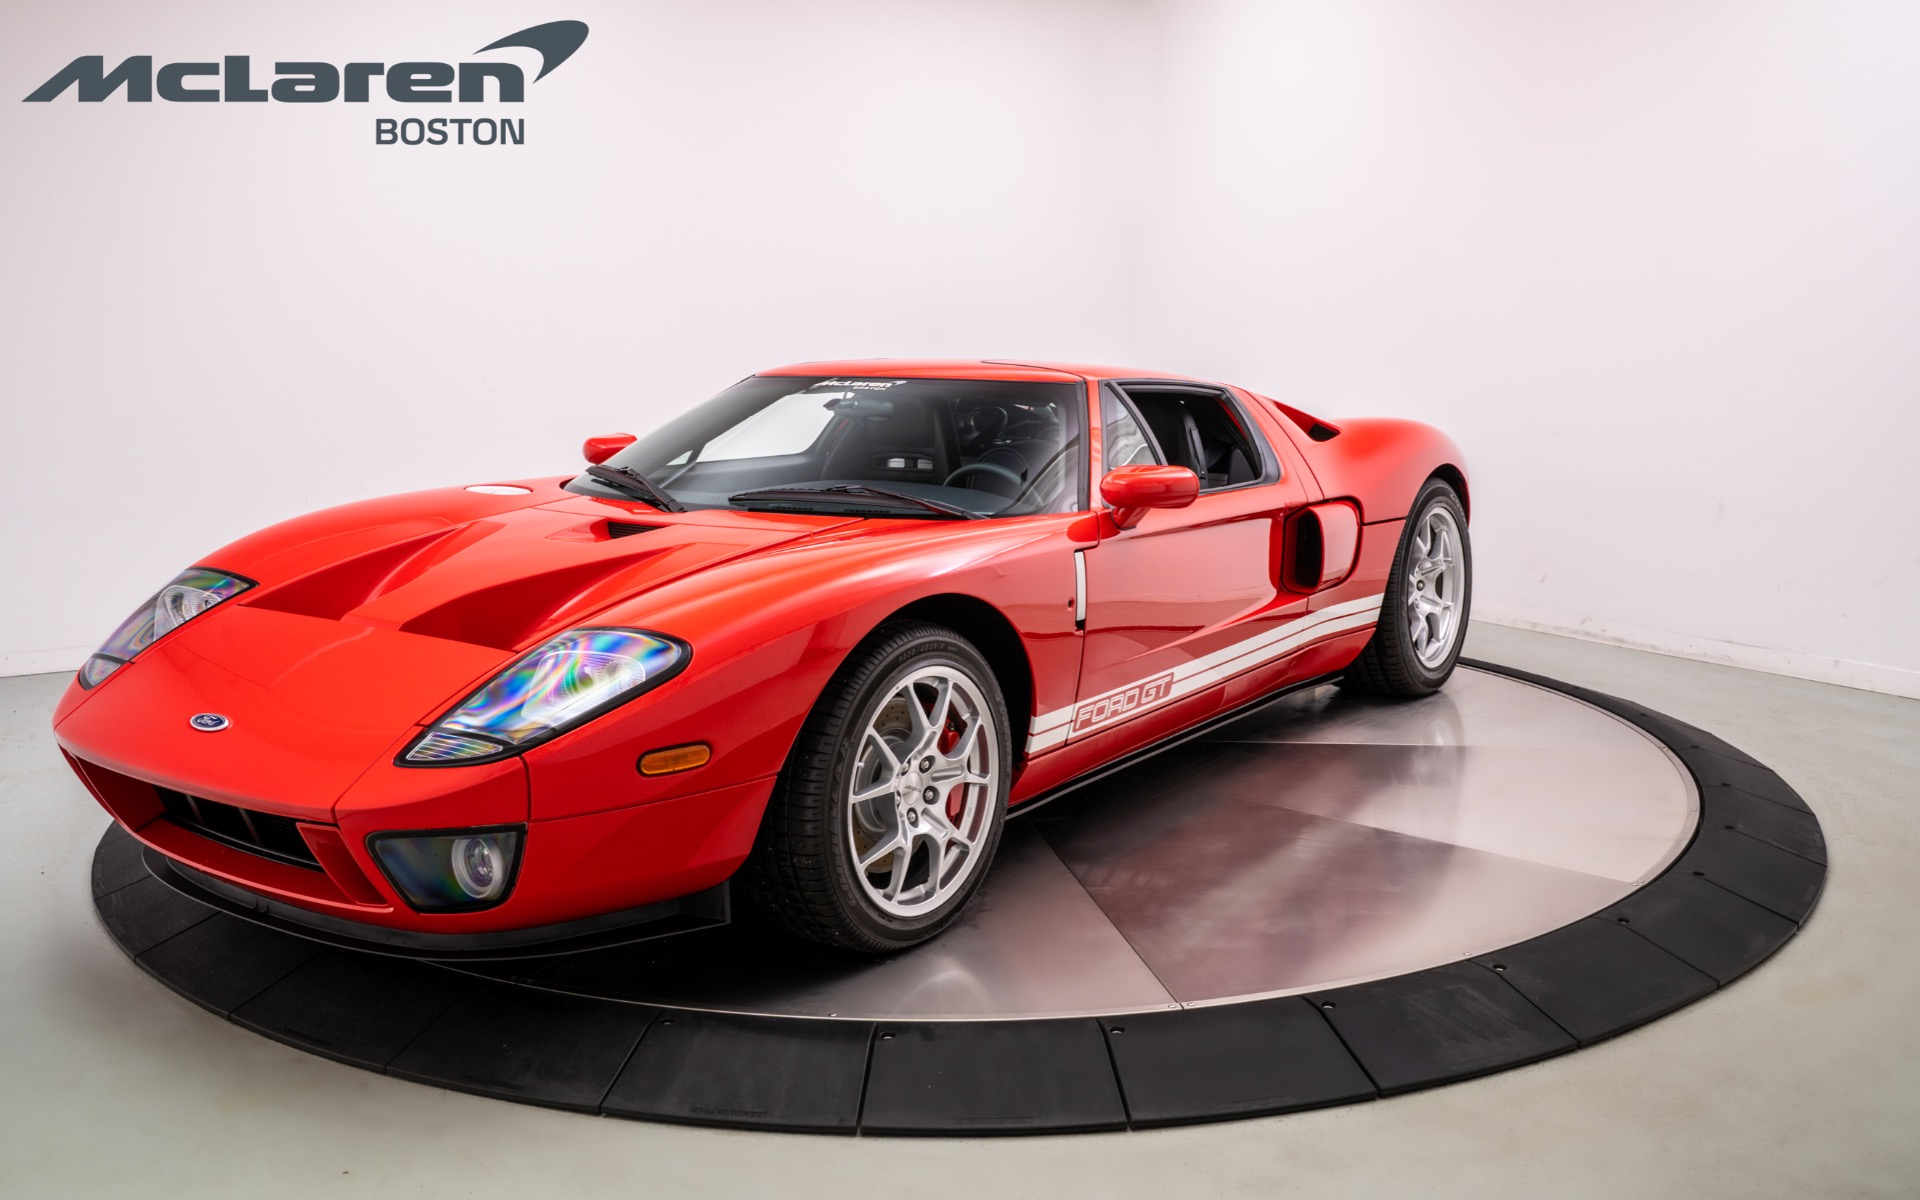 2005 Ford Gt For Sale In Norwell Ma 401793 Mclaren Boston